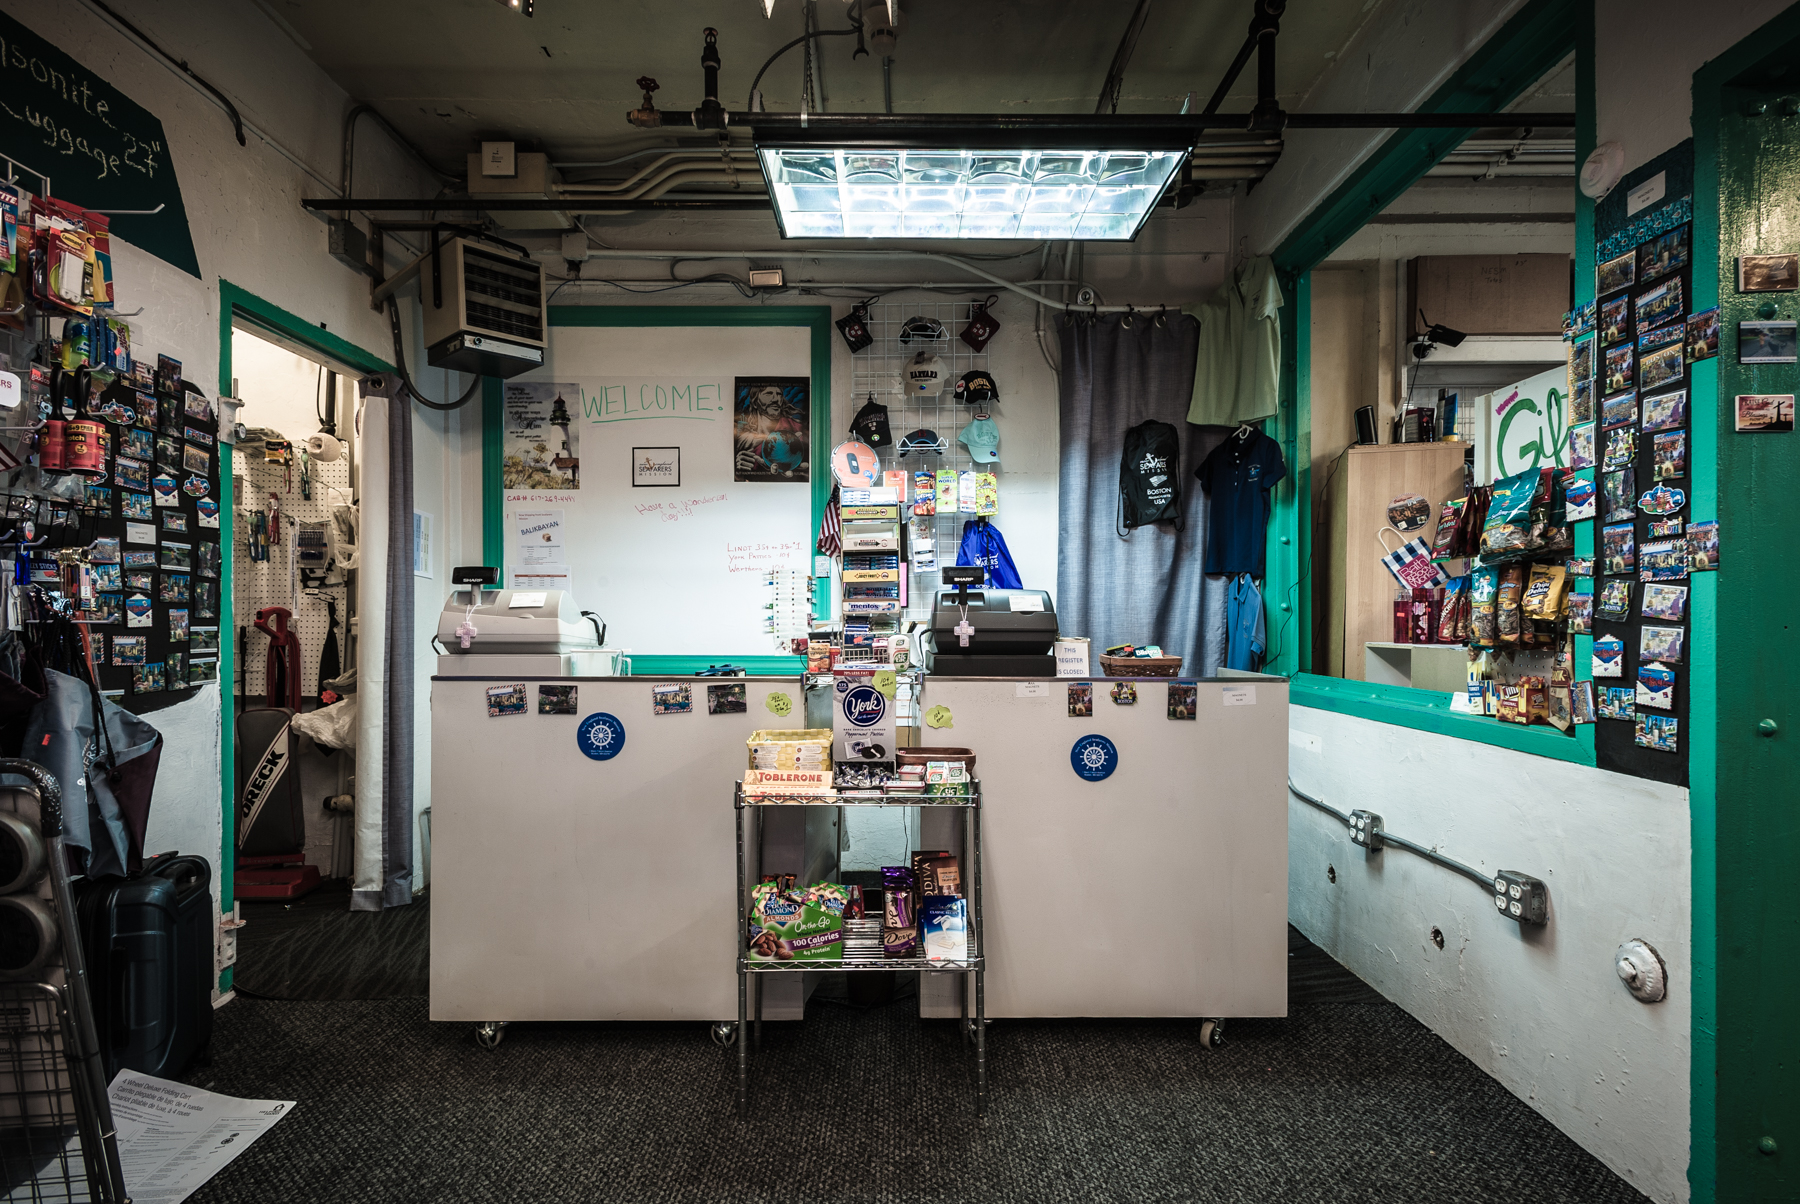 A small commissary on the first floor sells snacks and trinkets from around the world